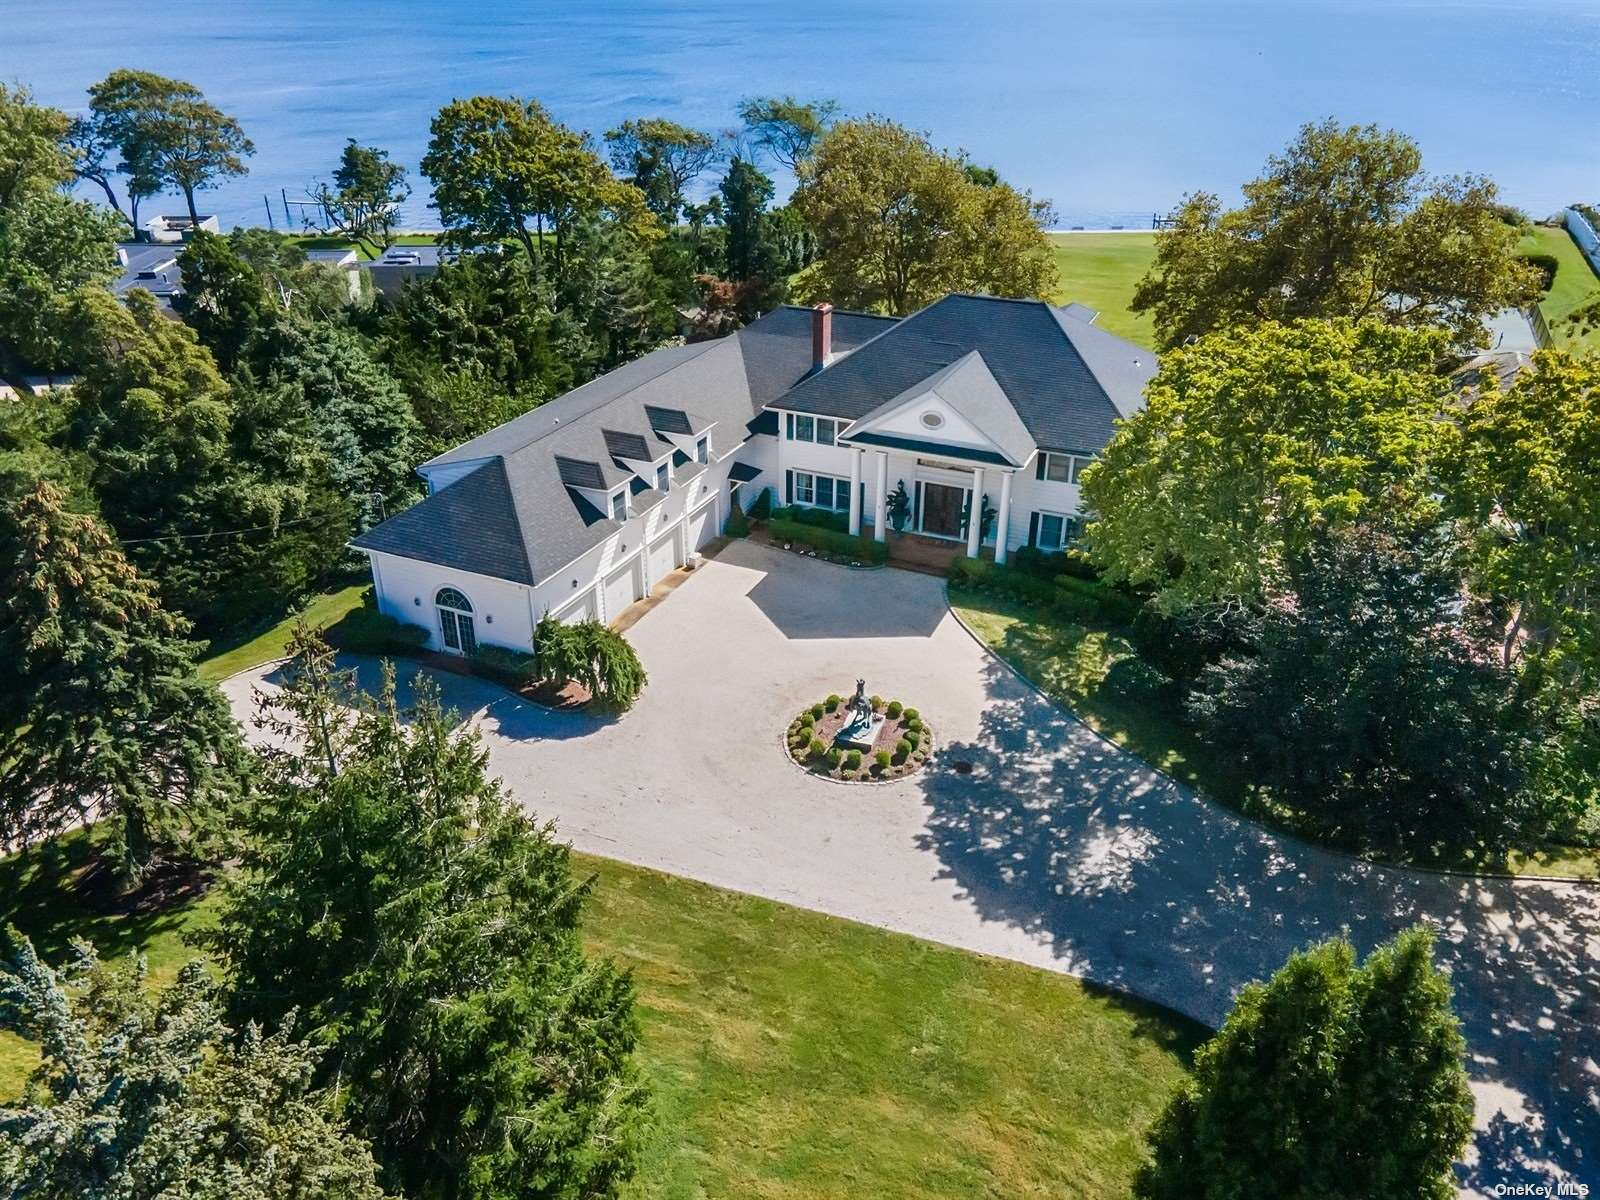 Sweeping waterfront views on Bellport Bay Cove.  The property features 2.48 acres with 200 ft. of bulkhead and dock.   Enter the grand marble foyer with oversized doors and immediate views of Great South Bay, as the foyer runs the entire width of this 3 Story Colonial Estate.   The main floor consists of a large living room with fireplace, a family room with fireplace and wet bar for entertaining, formal dining room, country kitchen with granite counters, custom cabinetry, island with seating, large area for kitchen table, and butlers pantry.  There is a wood paneled office lined with book shelves overlooking heated gunite pool, 2 half baths, and mudroom laundry area.  Upstairs are a master en suite with 2 tremendous walk in closets and his &  her baths.  A second en suite bedroom, 3 guest bedrms, full bath, half bath and gym area.  The third floor has game room with half bath.  4 car garage, tennis courts, putting green, gunite pool with pool house, and elevator.  Too much to list!!